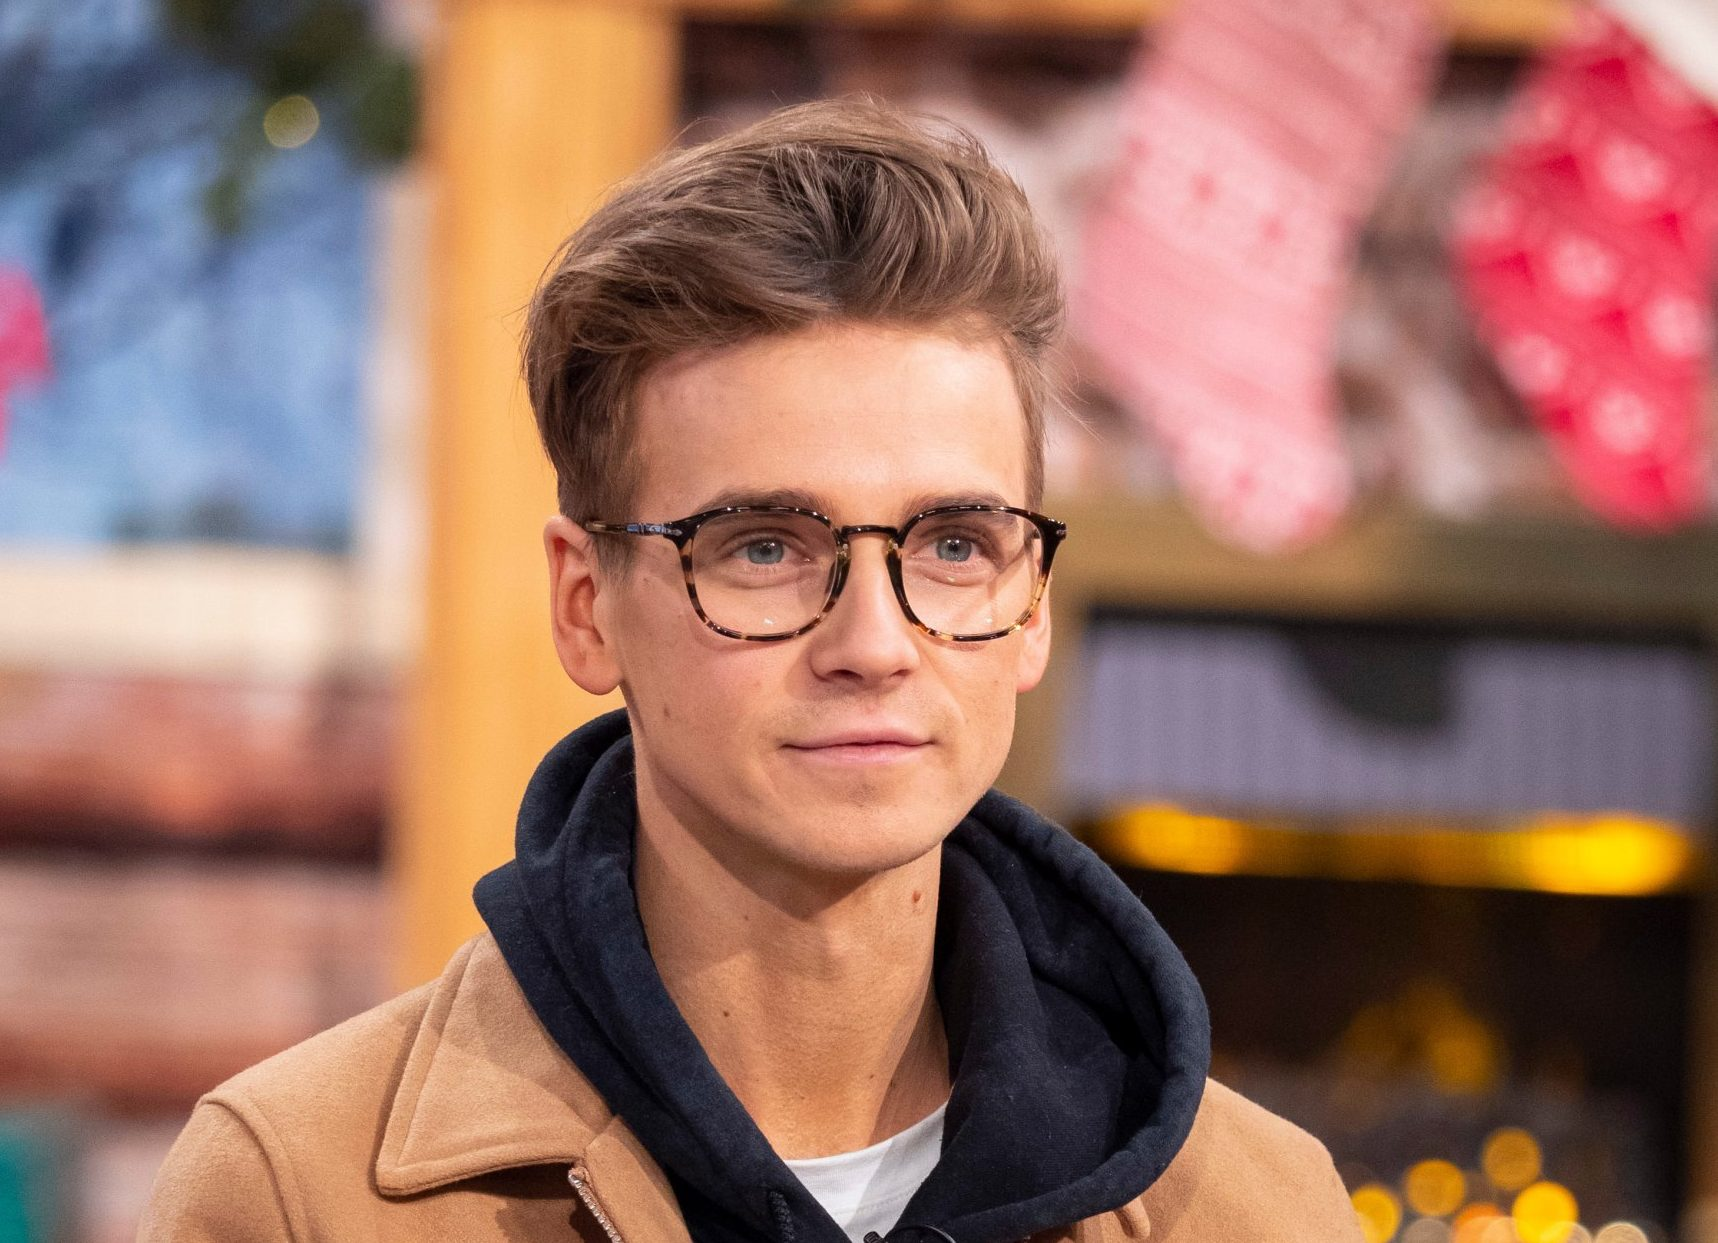 Joe Sugg wearing glasses on This Morning